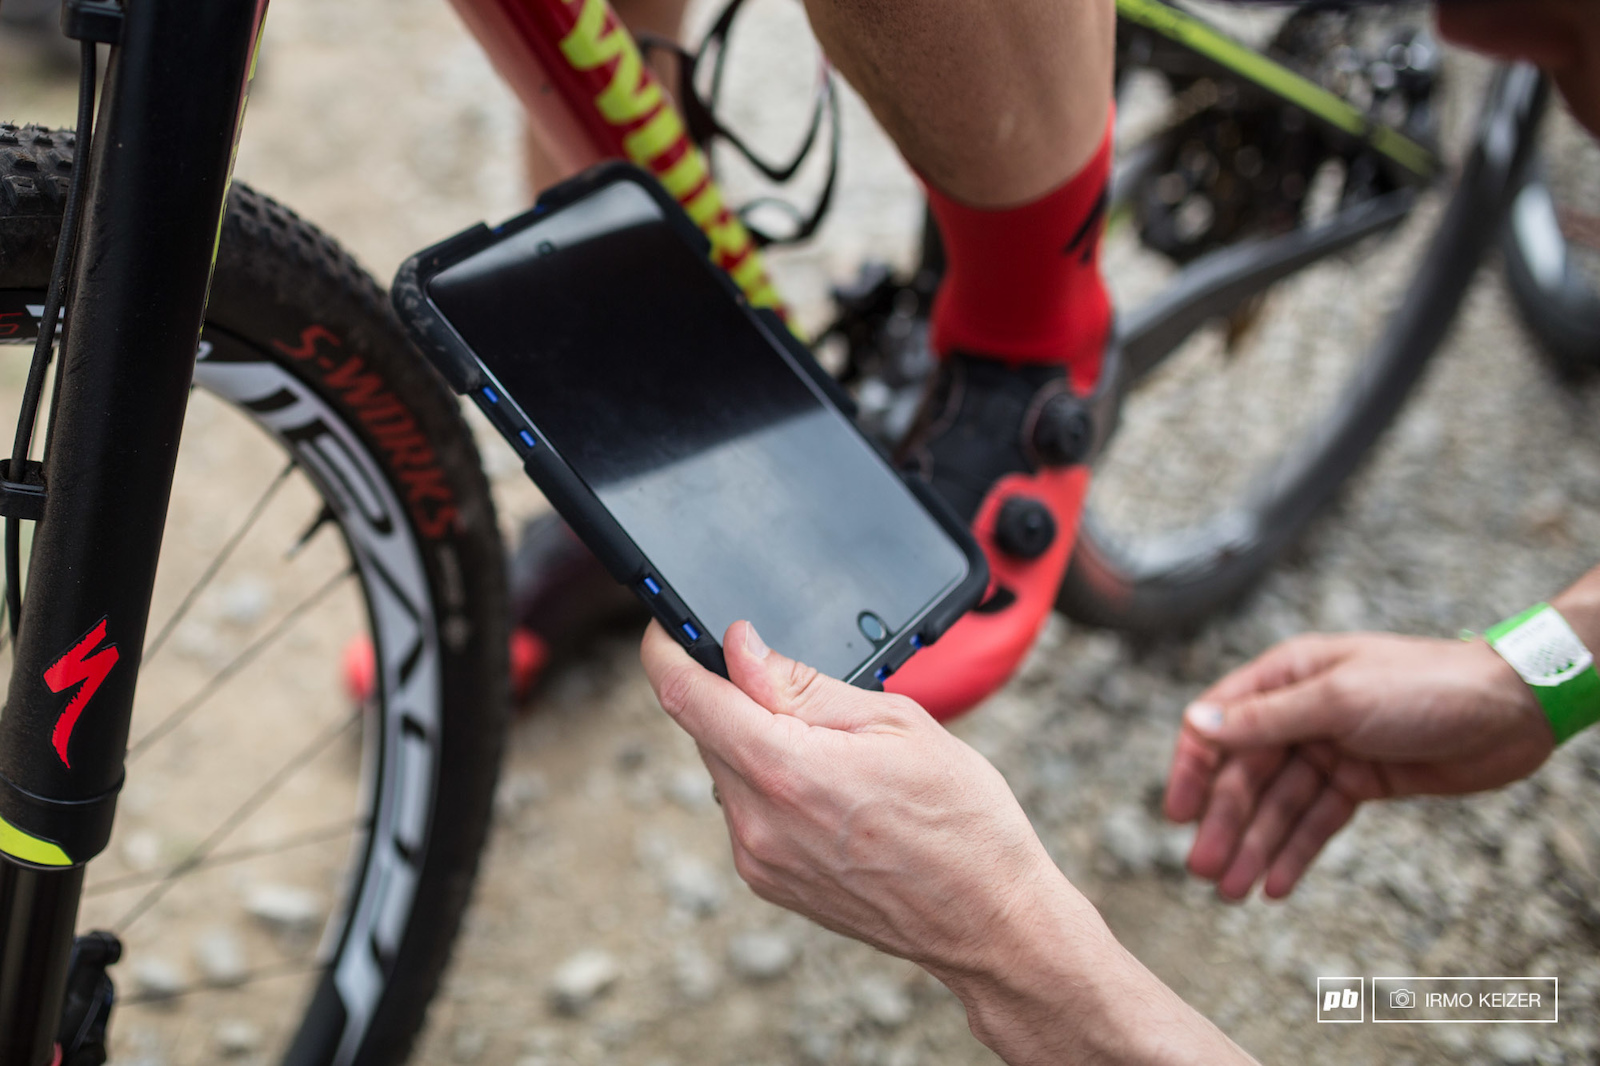 The UCI anti e-dope tablet. Made in the batcave.